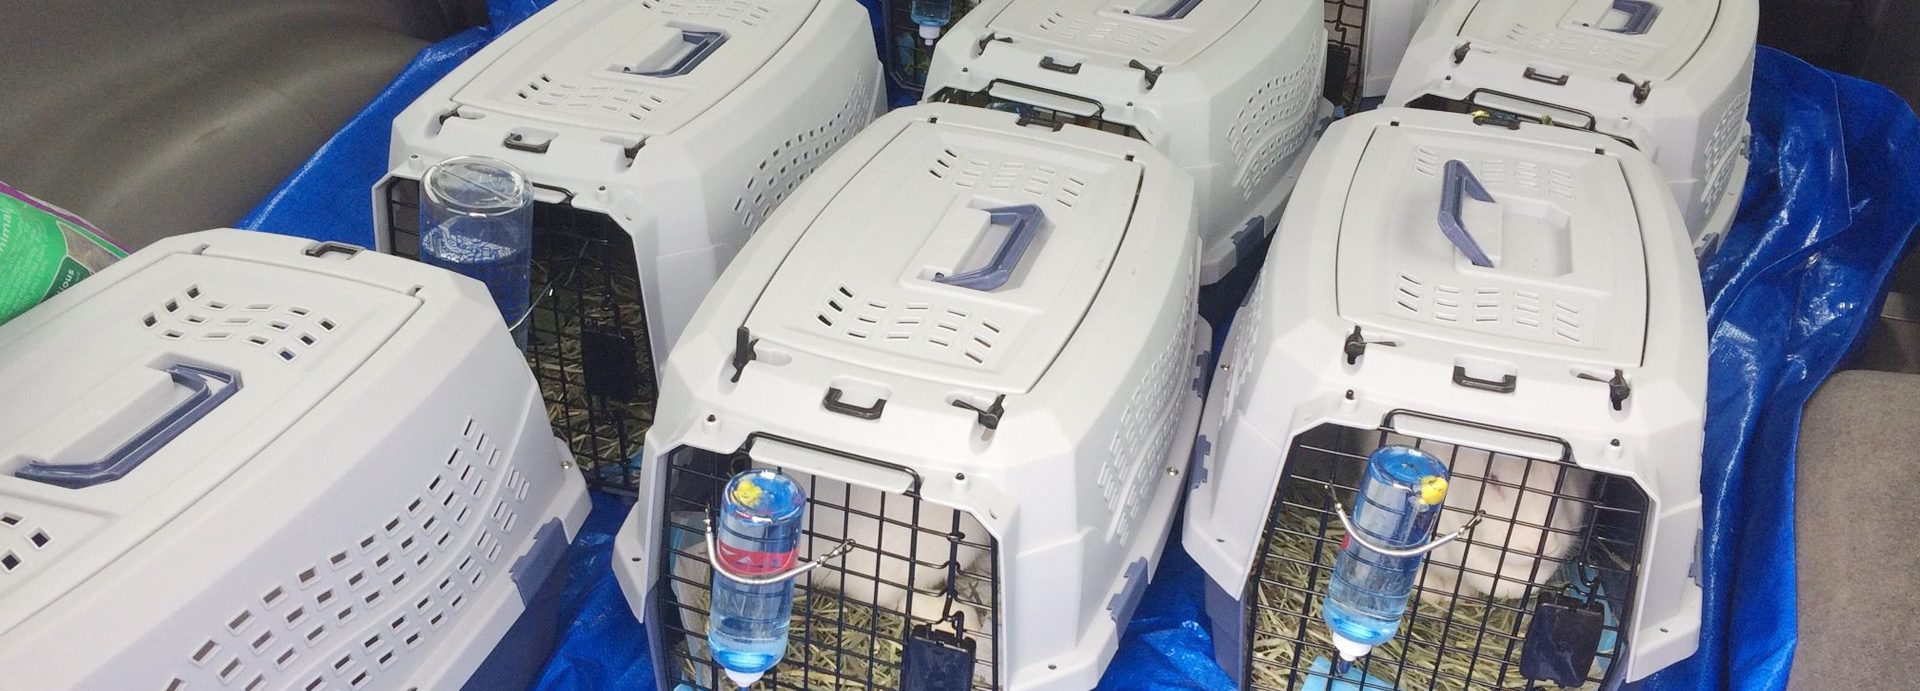 Beagle Freedom Project Saved 10 Bunnies From Human Drug Testing